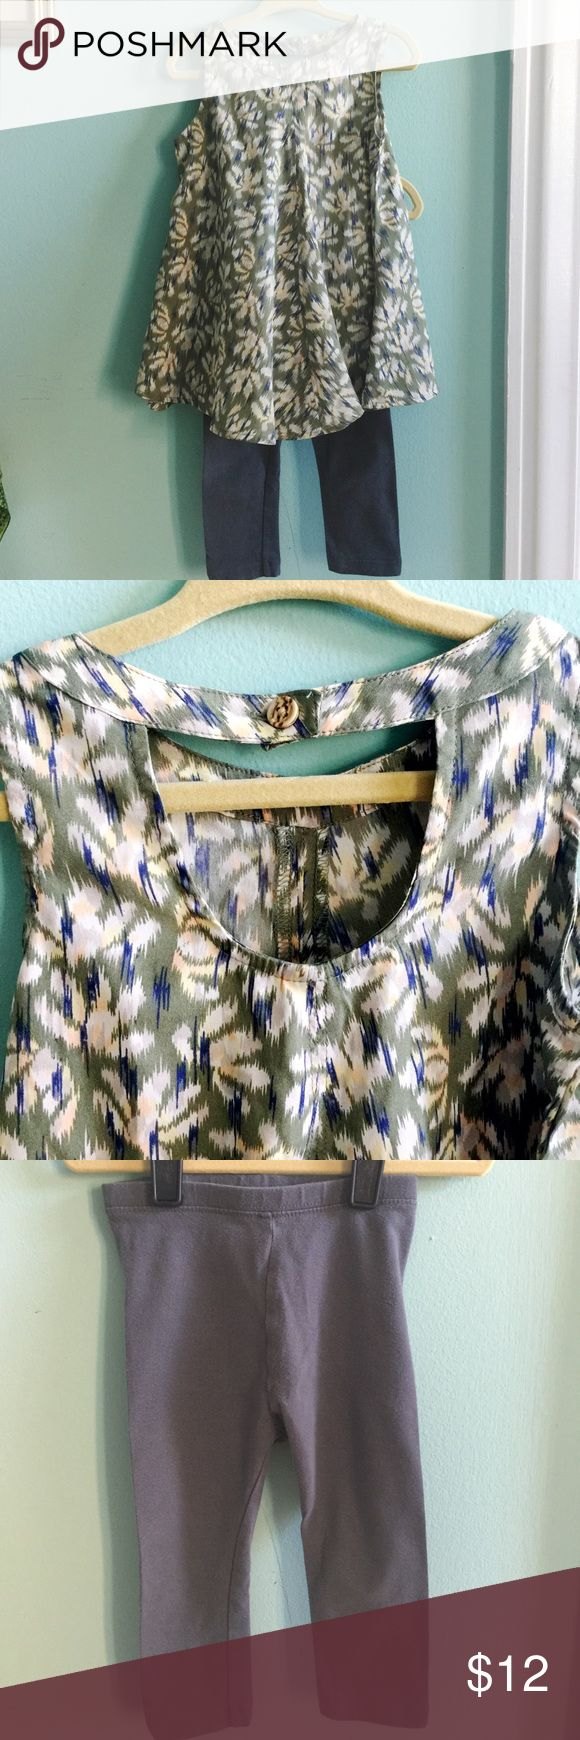 Old Navy Toddler Swing Top and Leggings Set This lightweight green floral swing top from Old Navy could easily be worn as a toddler dress, or paired with these classic gray leggings for cooler days. Sleeveless with a fun open back detail and button closure. Old Navy Matching Sets